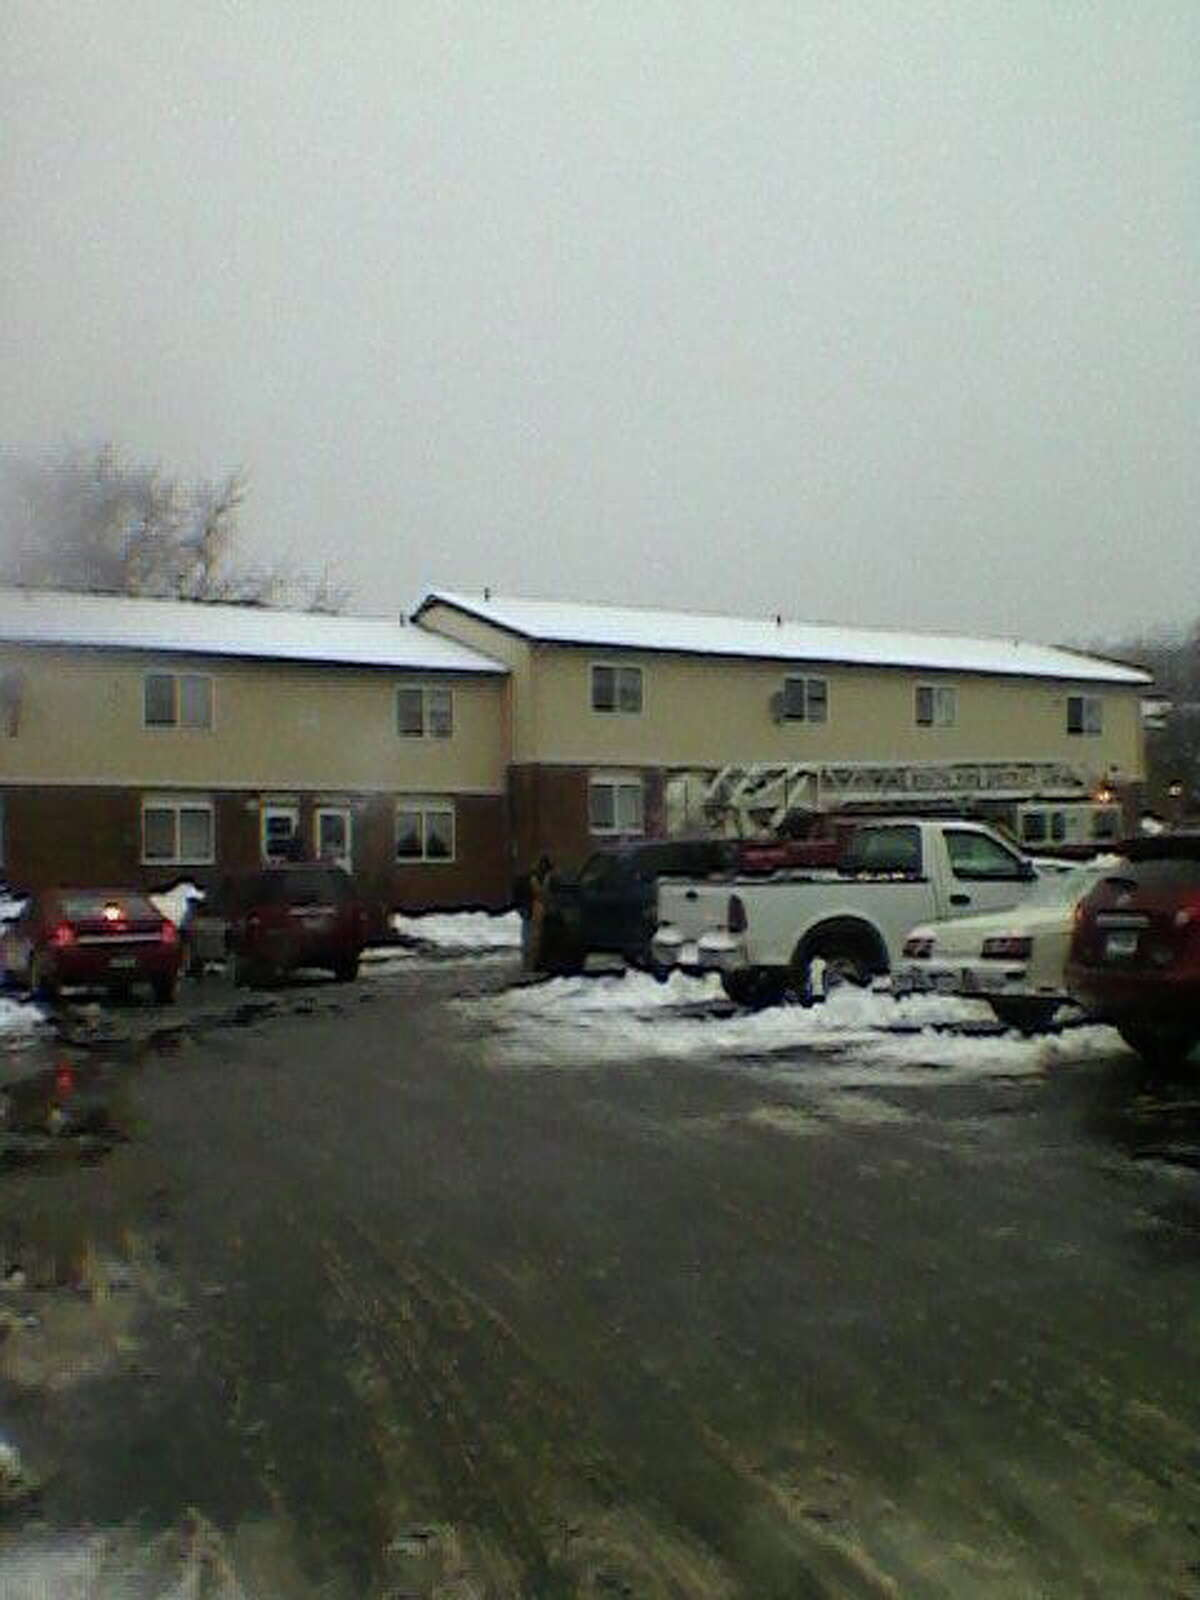 Firefighters at the scene of a fire at the Summerhill Apartments in Middletown.